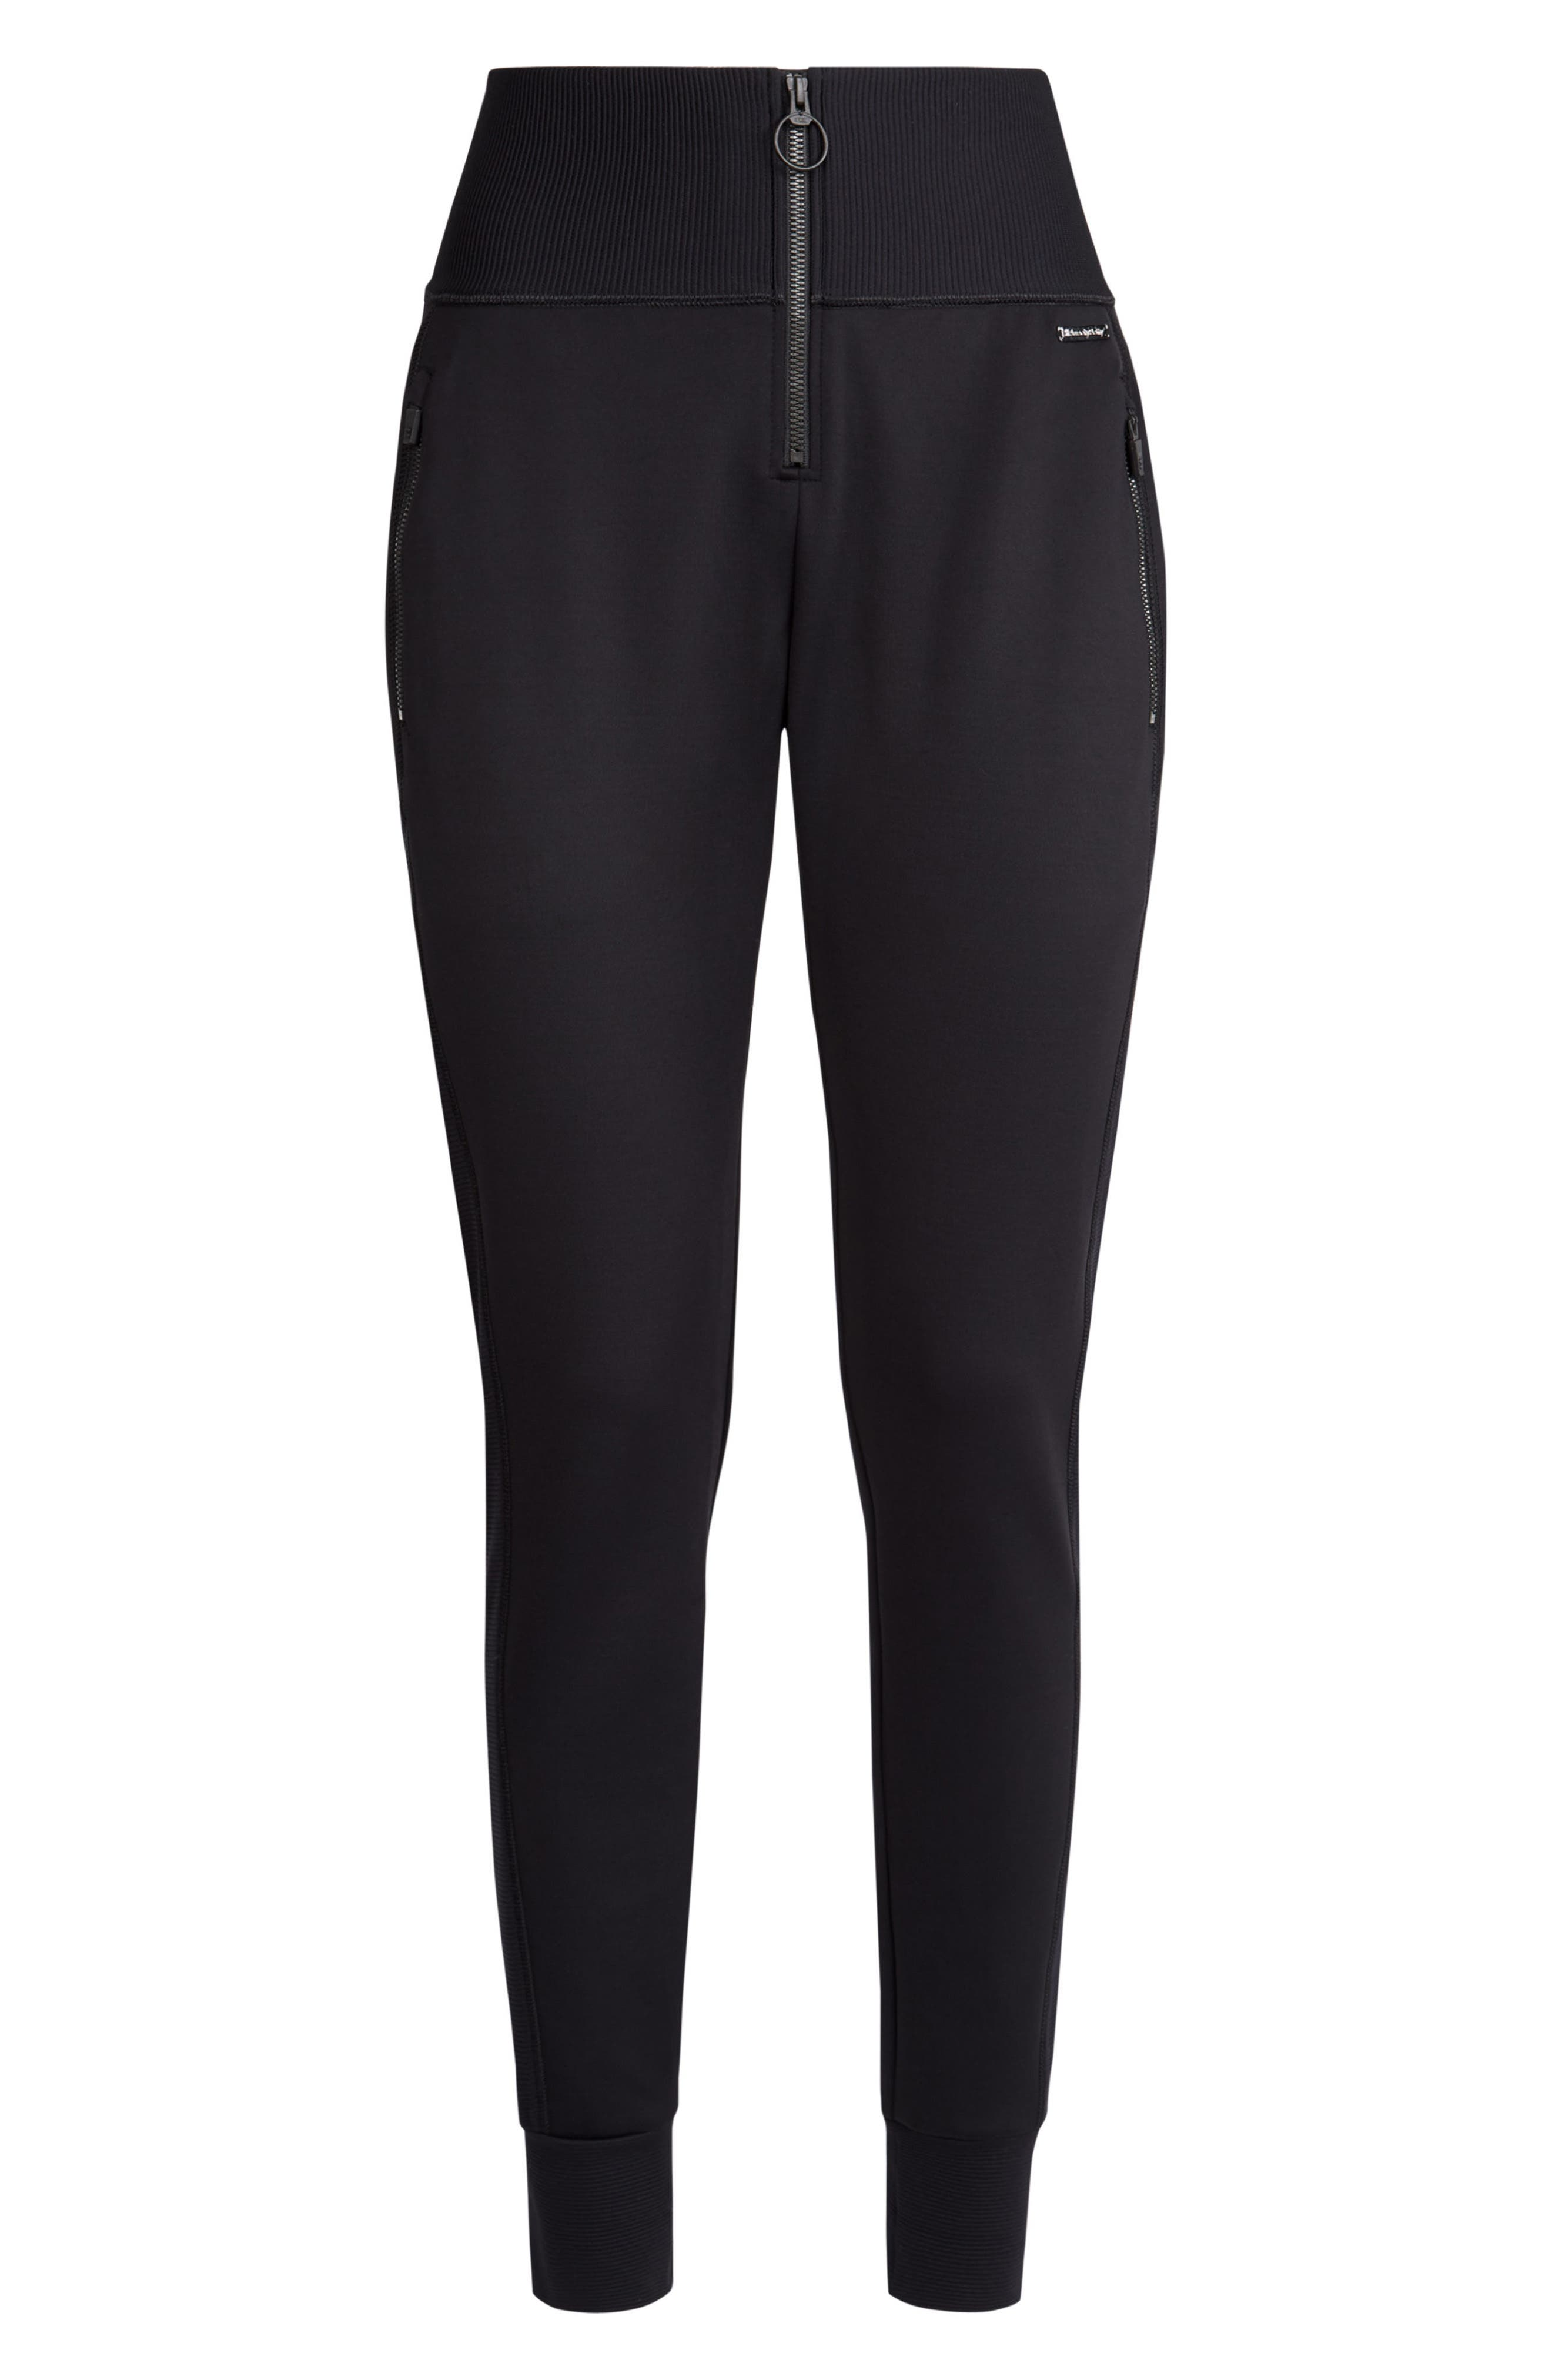 Flex Sweatpants,                             Alternate thumbnail 6, color,                             Black